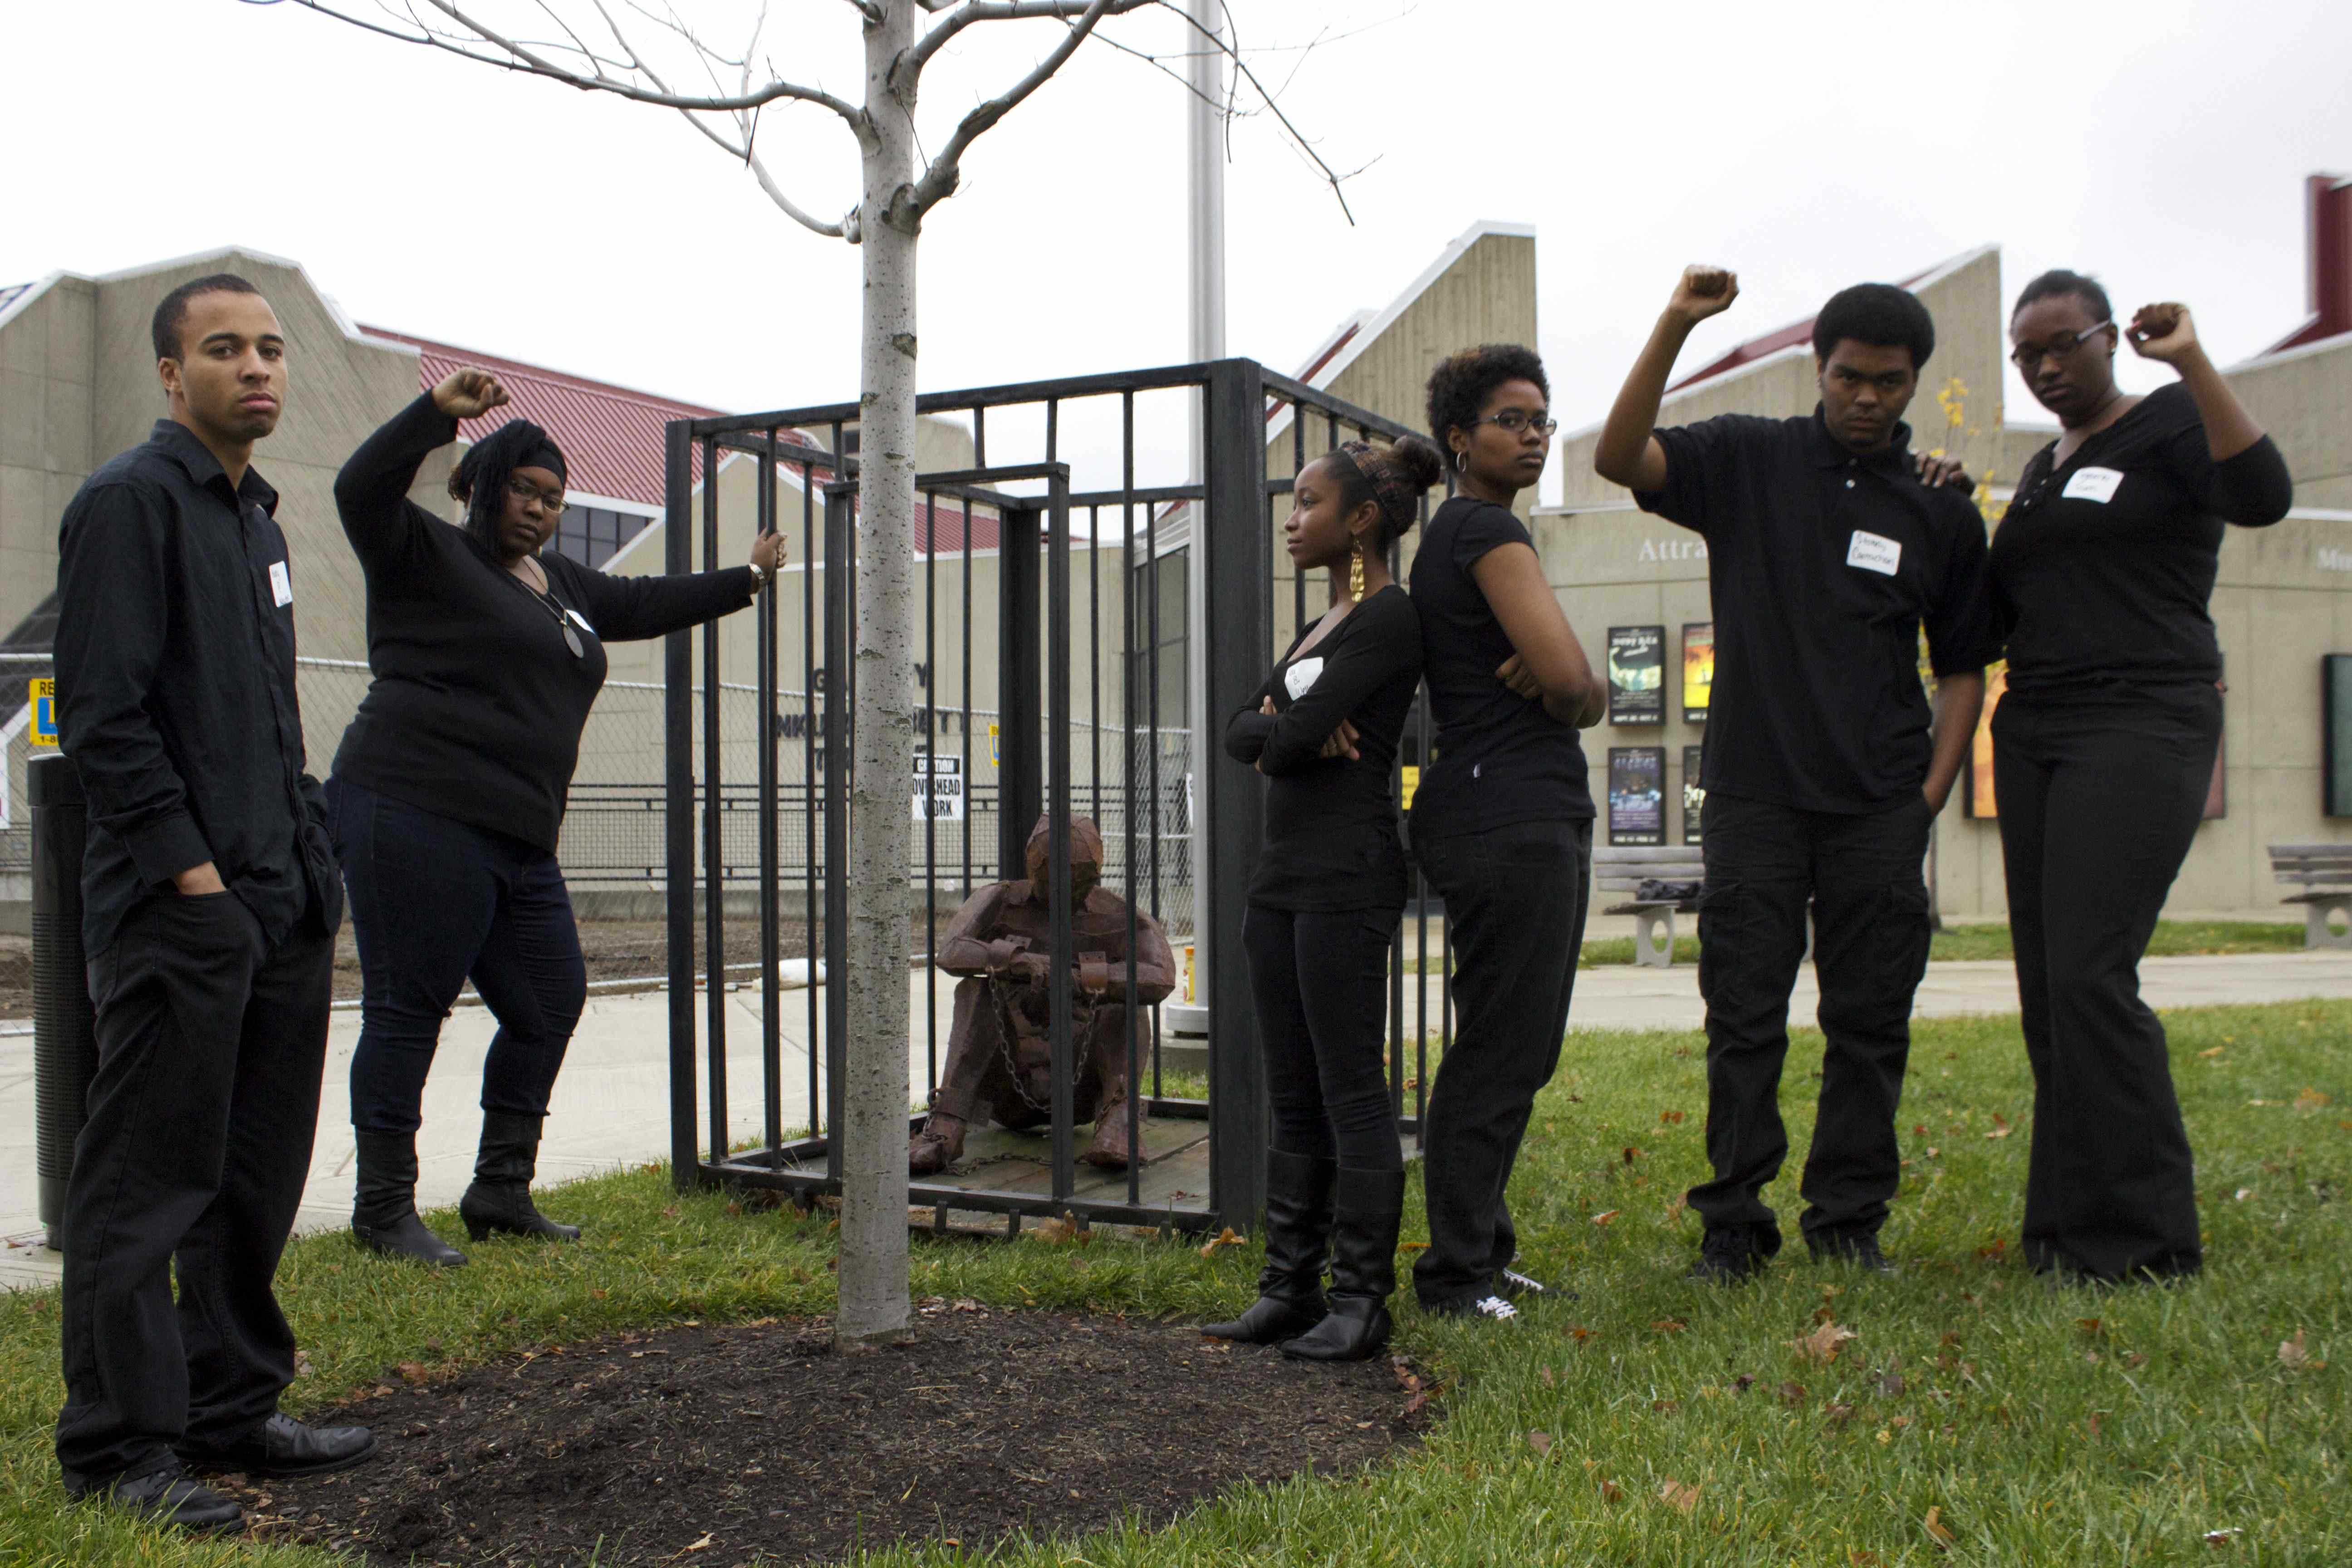 Members of the Black United Students organization at NKU pose on campus. Some members of this organization have recently voiced their concerns with the treatment of African-Americans within the university.